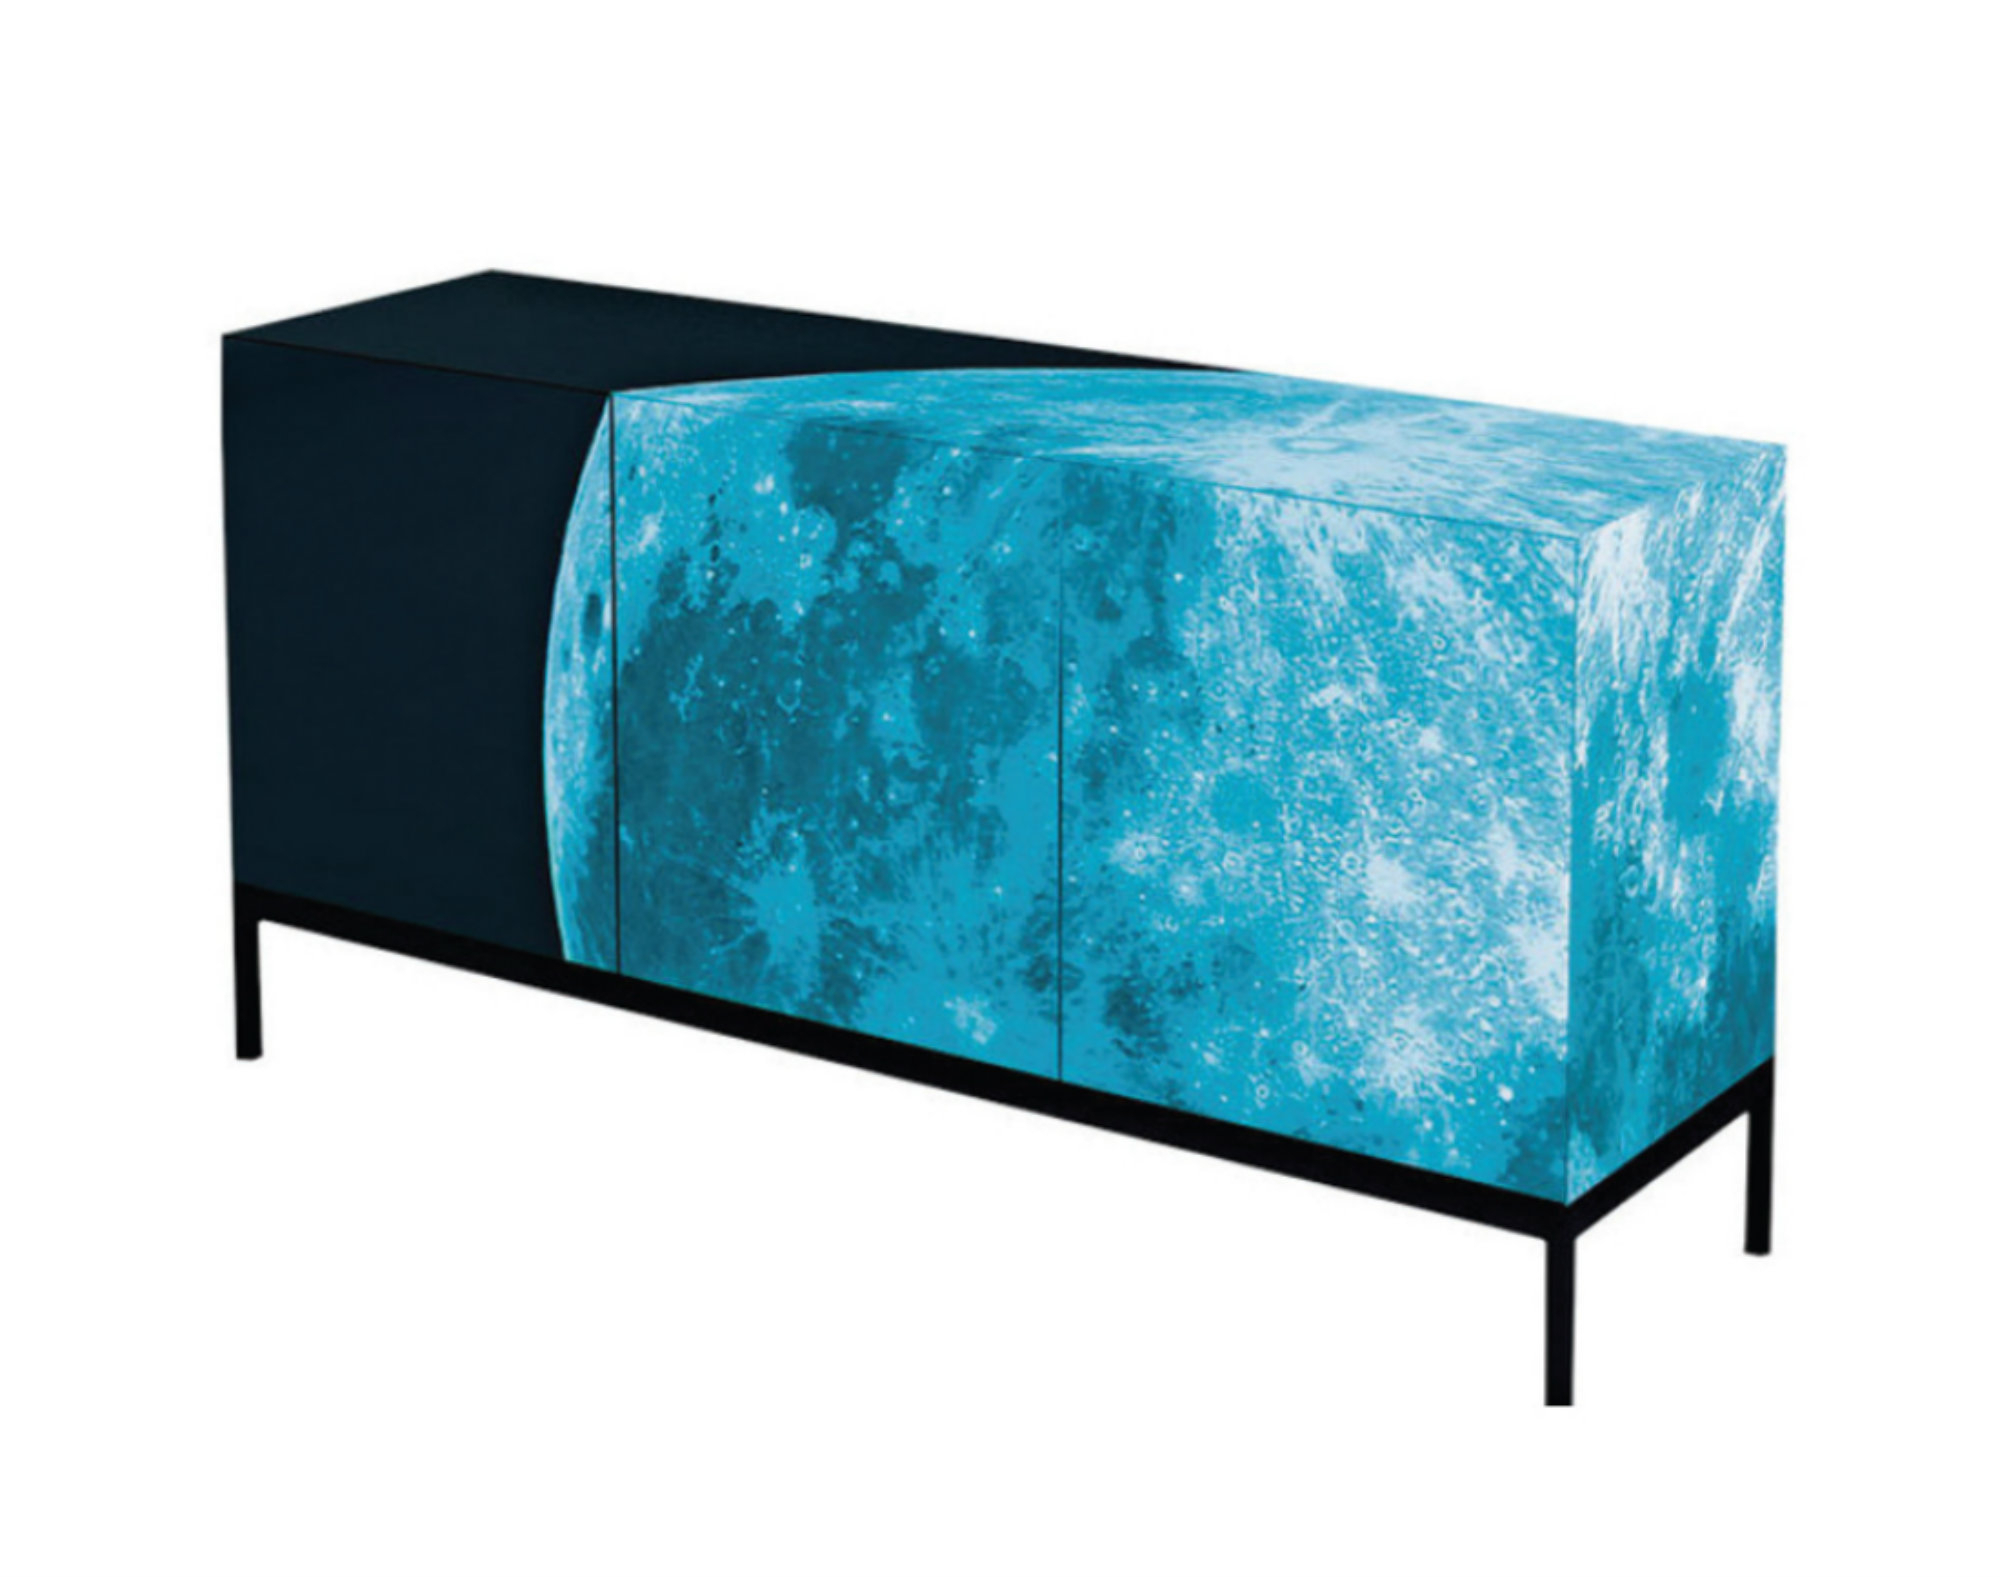 Best And Newest Papadopoulos Sideboards With Regard To Full Moon Limited Edition Sideboard Designedsotirios (View 2 of 20)